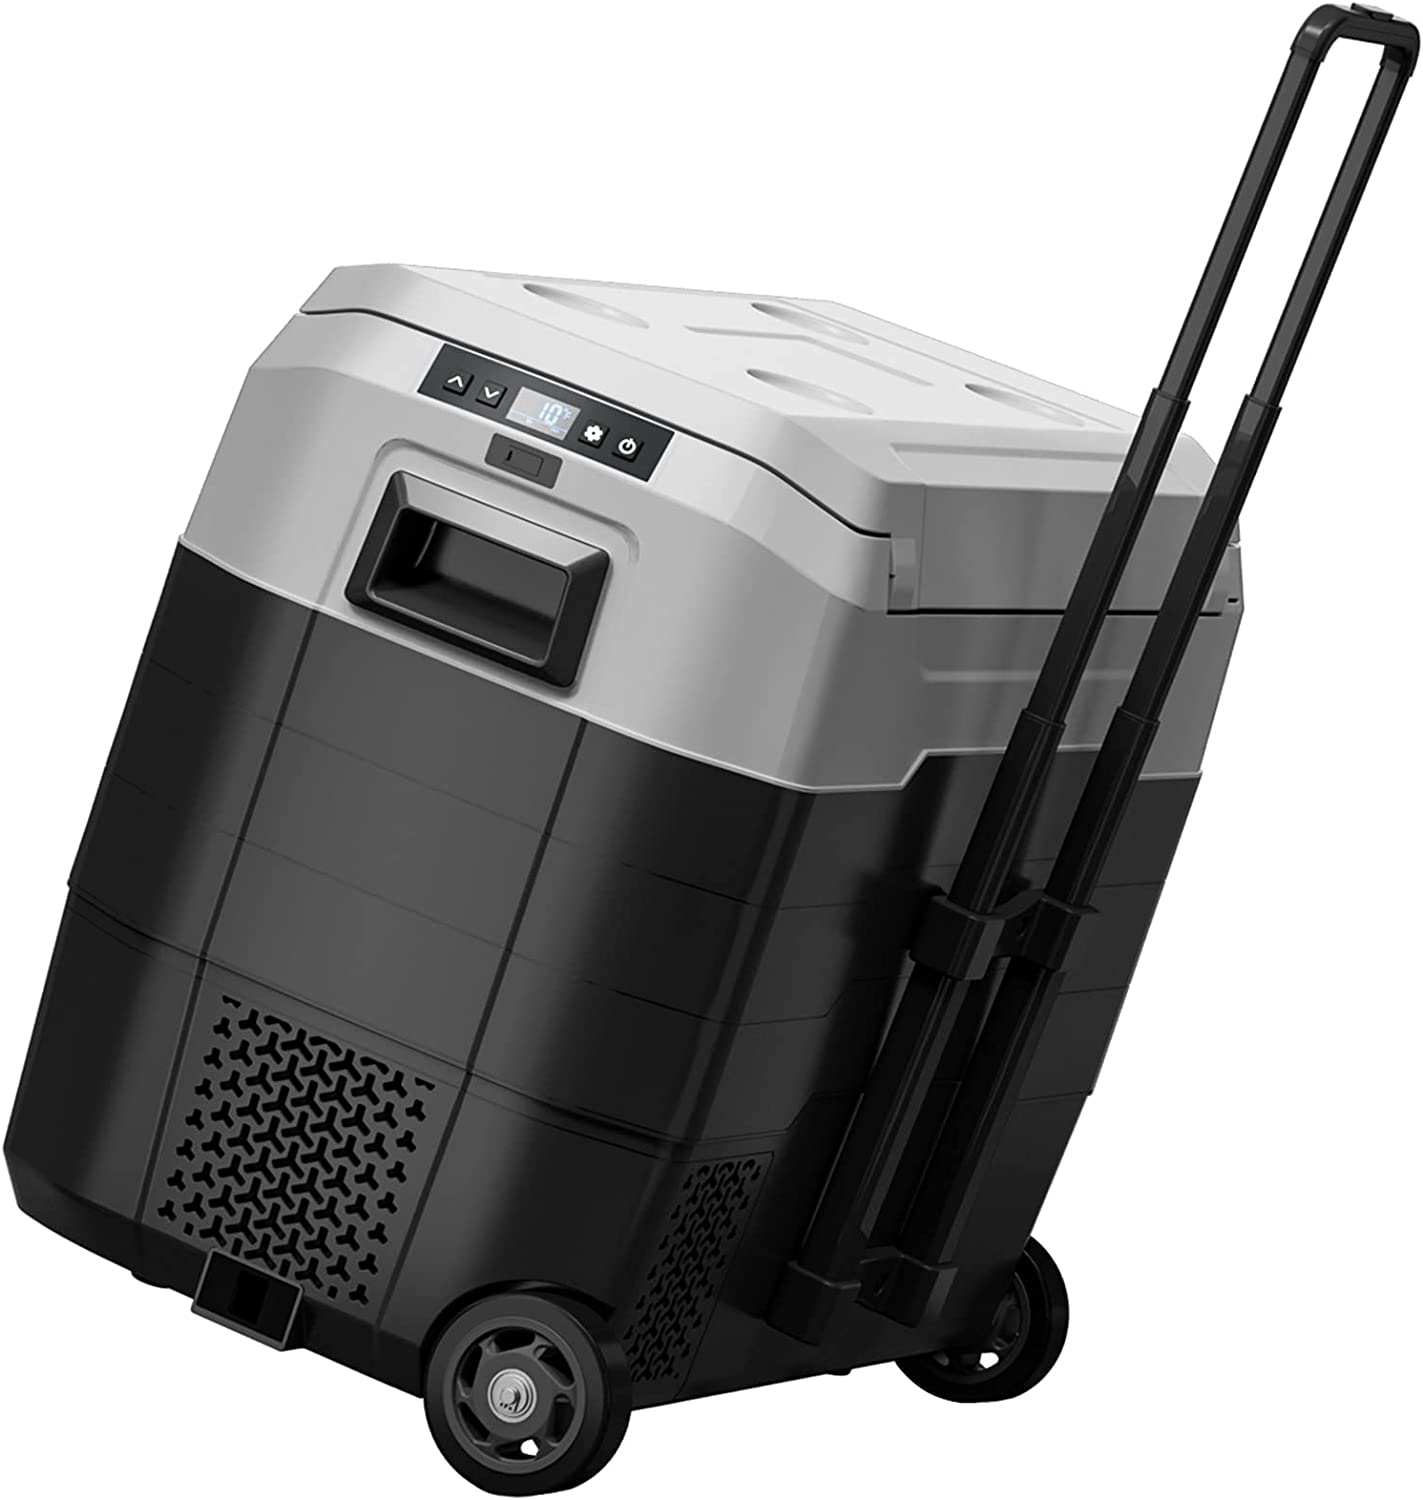 Portable Car Freezer with Wheels, 52 Quart Car Refrigerator with Telescopic Handle, -4°F~50°F 12V/24V RV Fridge Cooler Compact Compressor Fast Cooling,Indoor Outdoor Use for Car,Truck,Camping,Home: Automotive